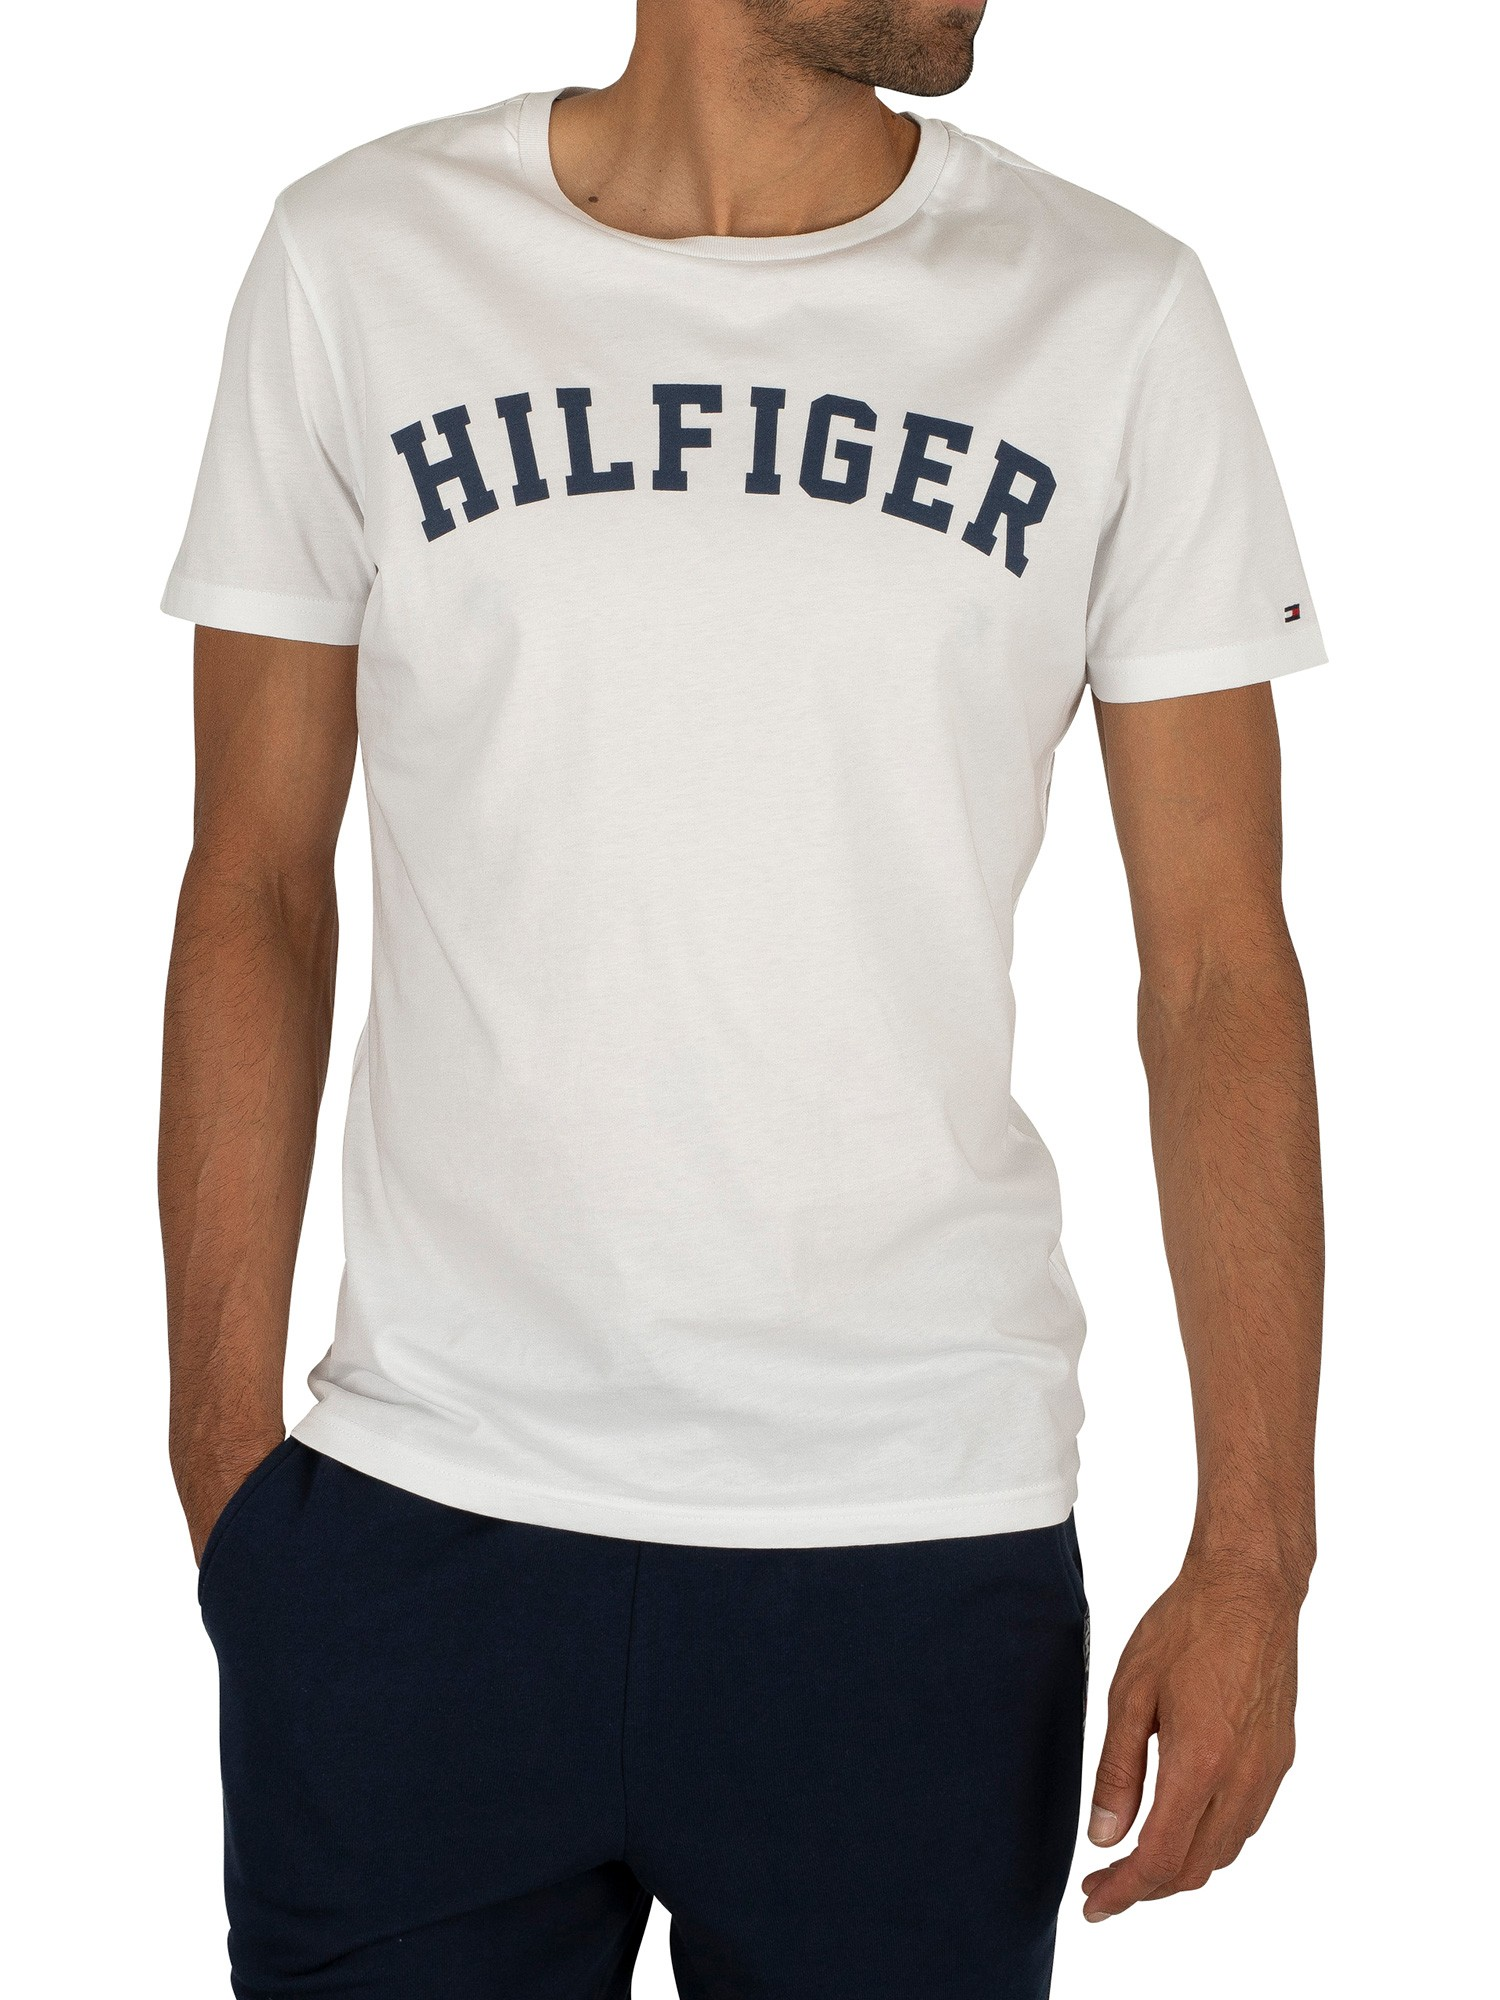 Hilfiger Denim Men's Original V Neck Short Sleeve T Shirt, Tommy Black, Large